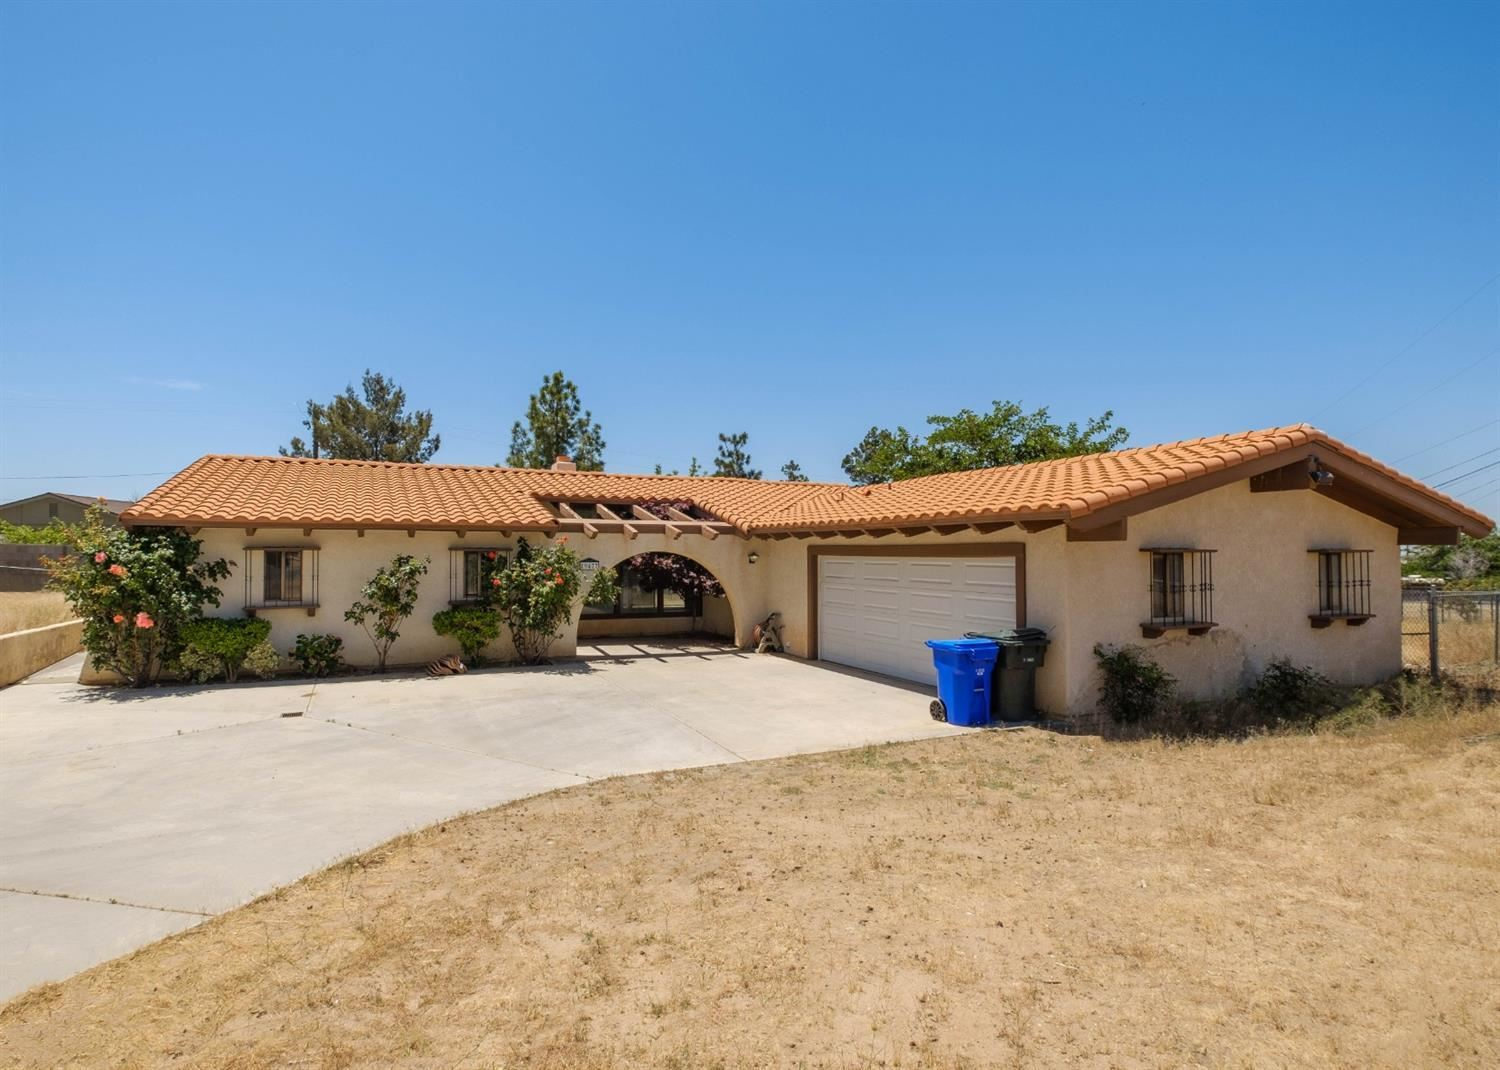 19477 Saint Timothy Lane, Apple Valley, CA 92307 - MLS#: 524761